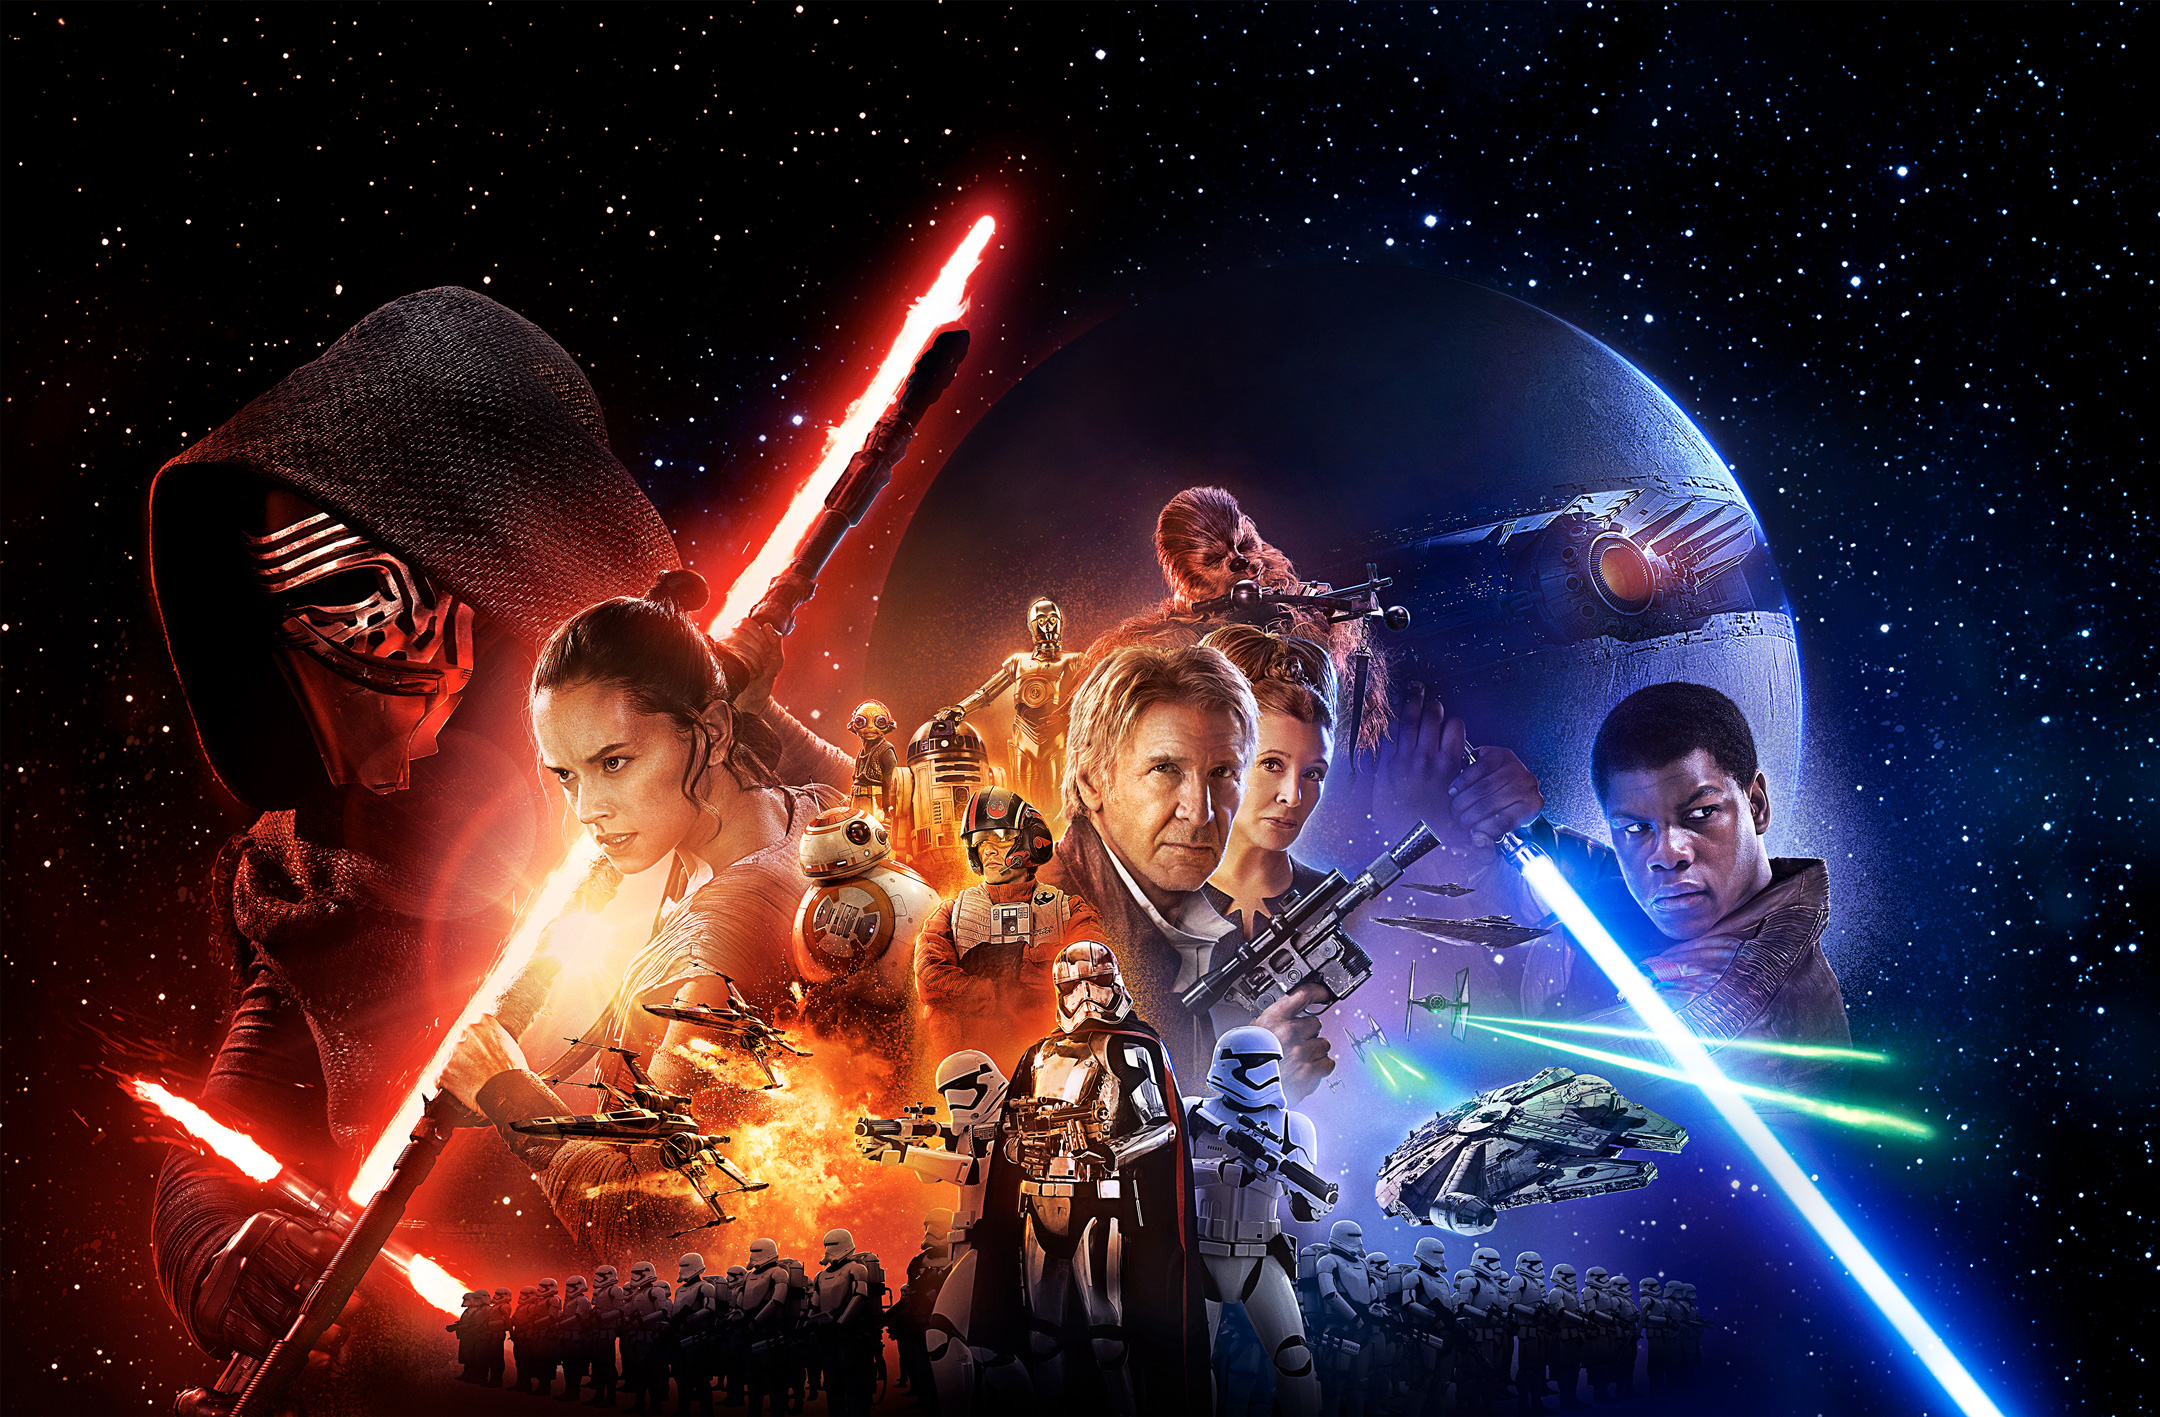 The Force Awakens banner high-resolution. John Boyega, Carrie Fisher, Harrison Ford and Daisy Ridley